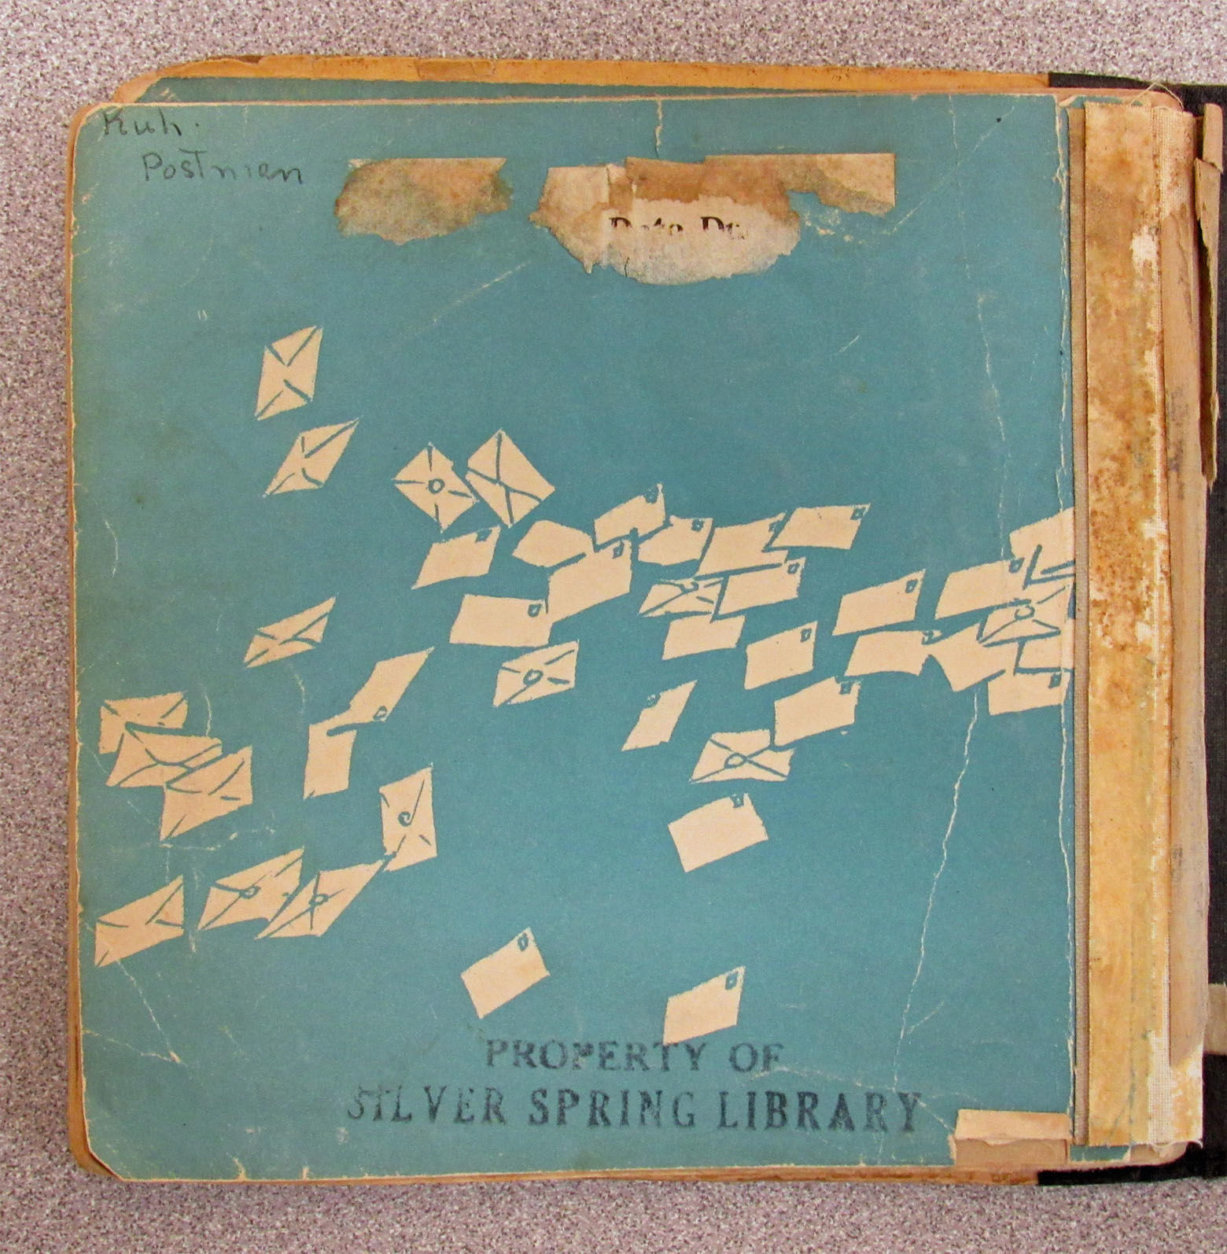 The book was checked out in 1946 and was inadvertently packed up when Mora Gregg's family moved from D.C. to Canada. (Courtesy Montgomery County Public Library)